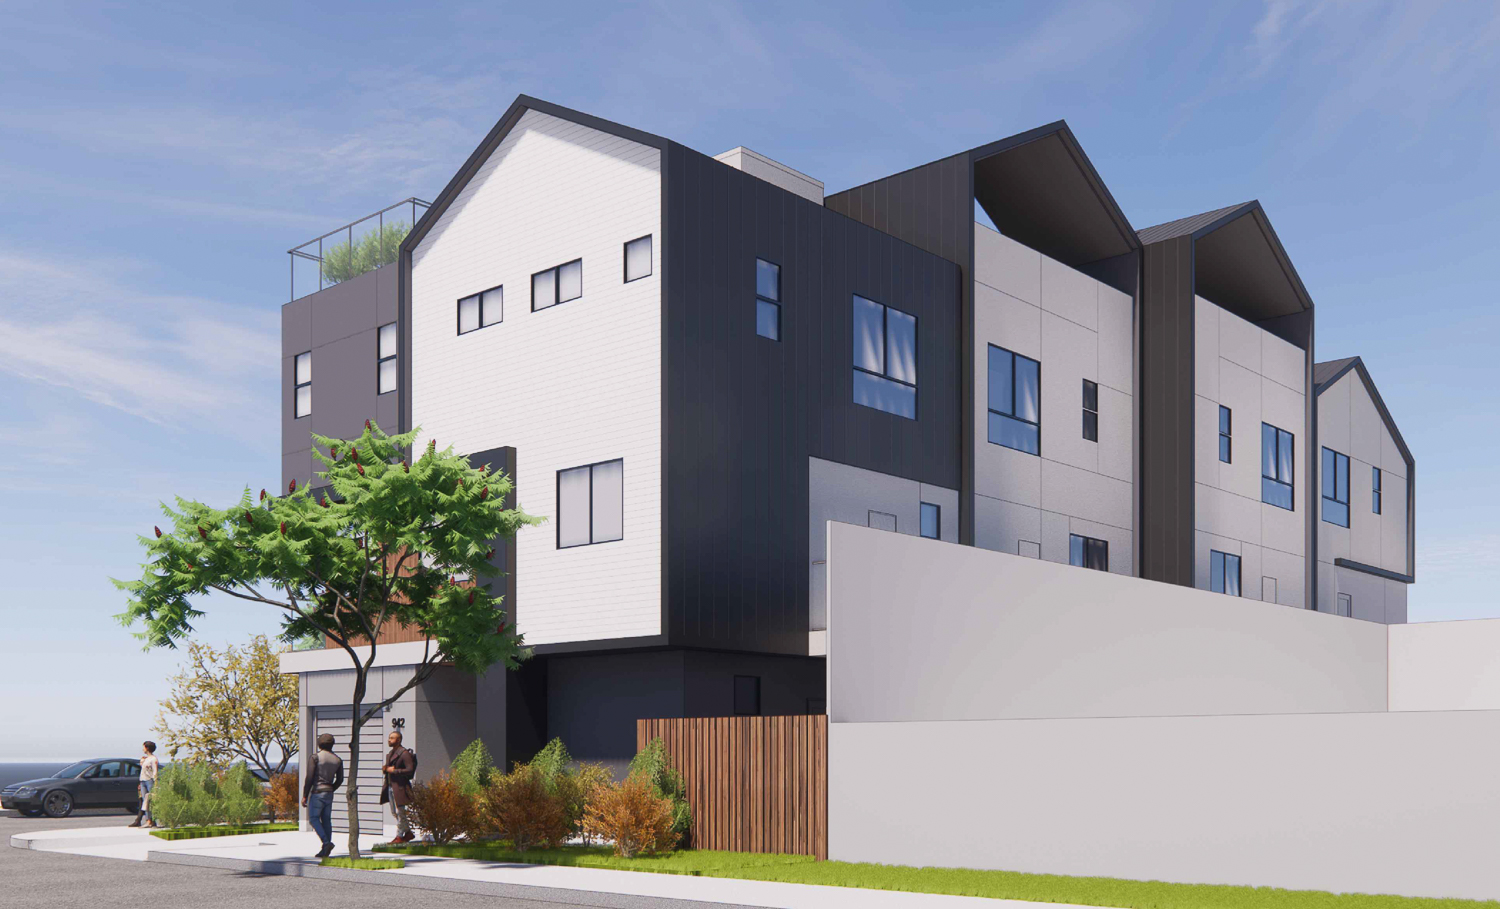 942 Pine Street rear view, rendering by Collaborative Design Studio